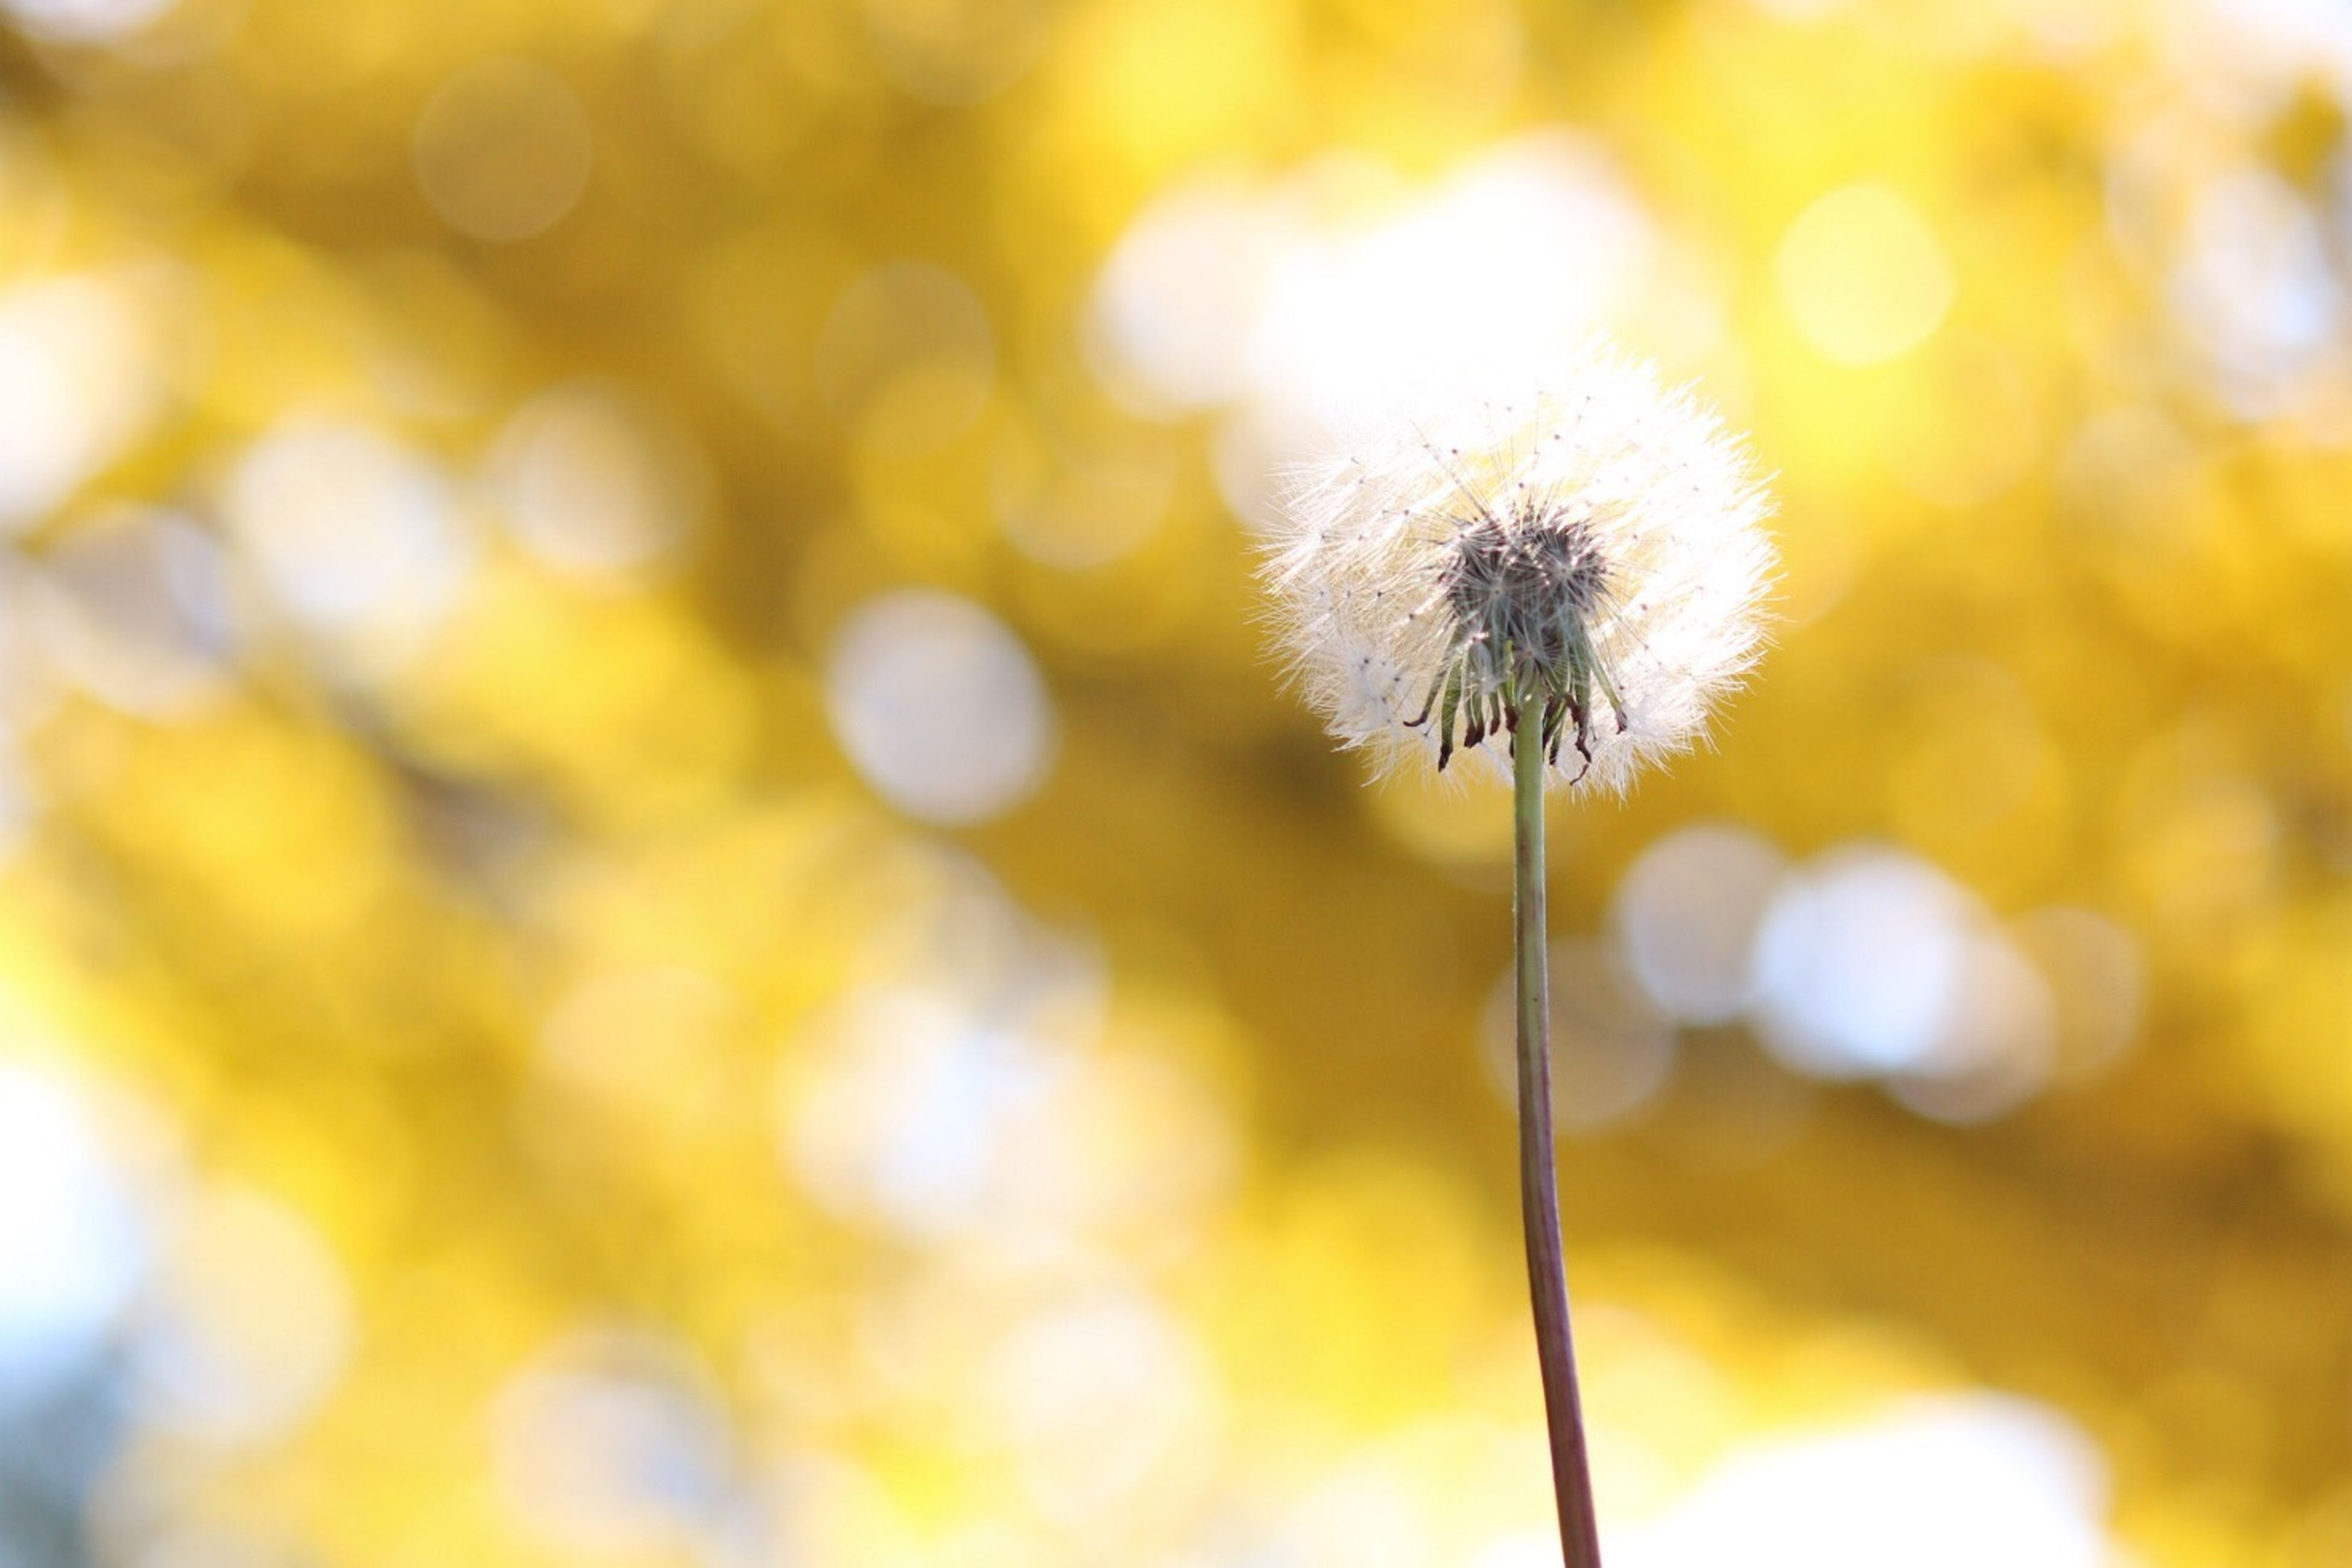 flower, dandelion, fragility, growth, focus on foreground, flower head, freshness, close-up, stem, beauty in nature, nature, single flower, selective focus, plant, outdoors, blooming, in bloom, wildflower, softness, no people